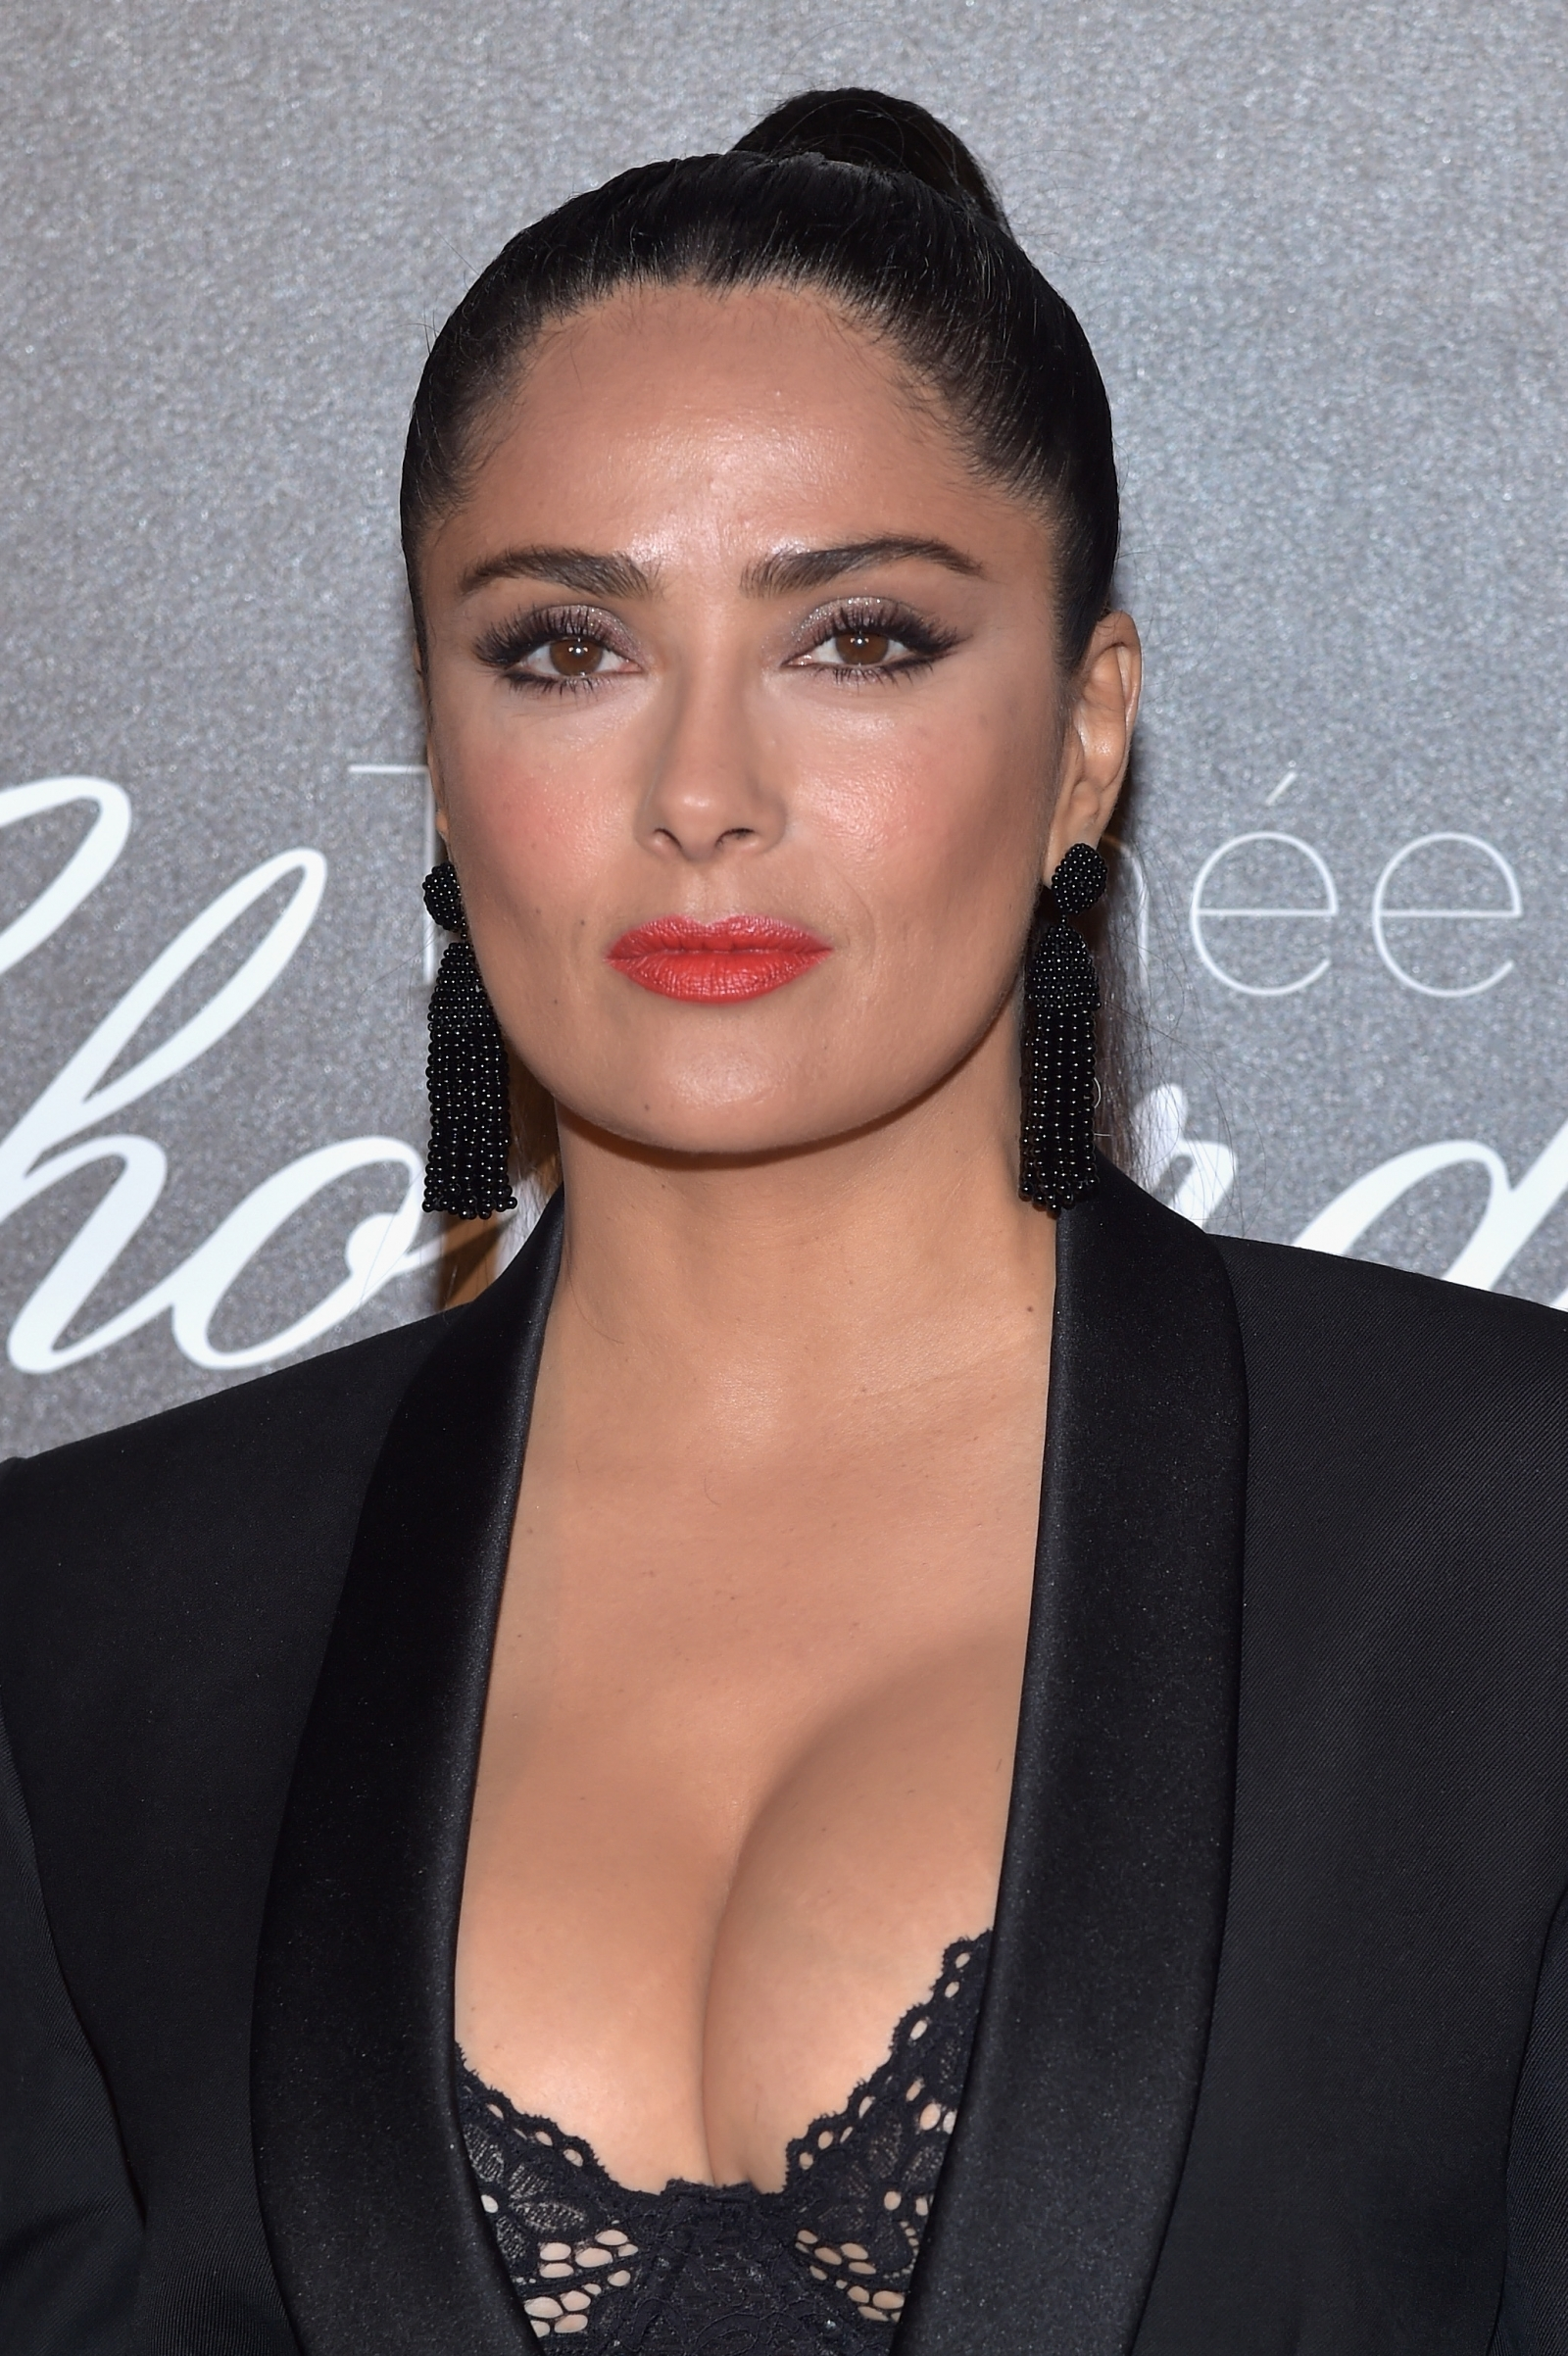 Salma Hayek stuns in racy lingerie and see-through outfit in eye-popping cover shot: 'Sexy Mama'